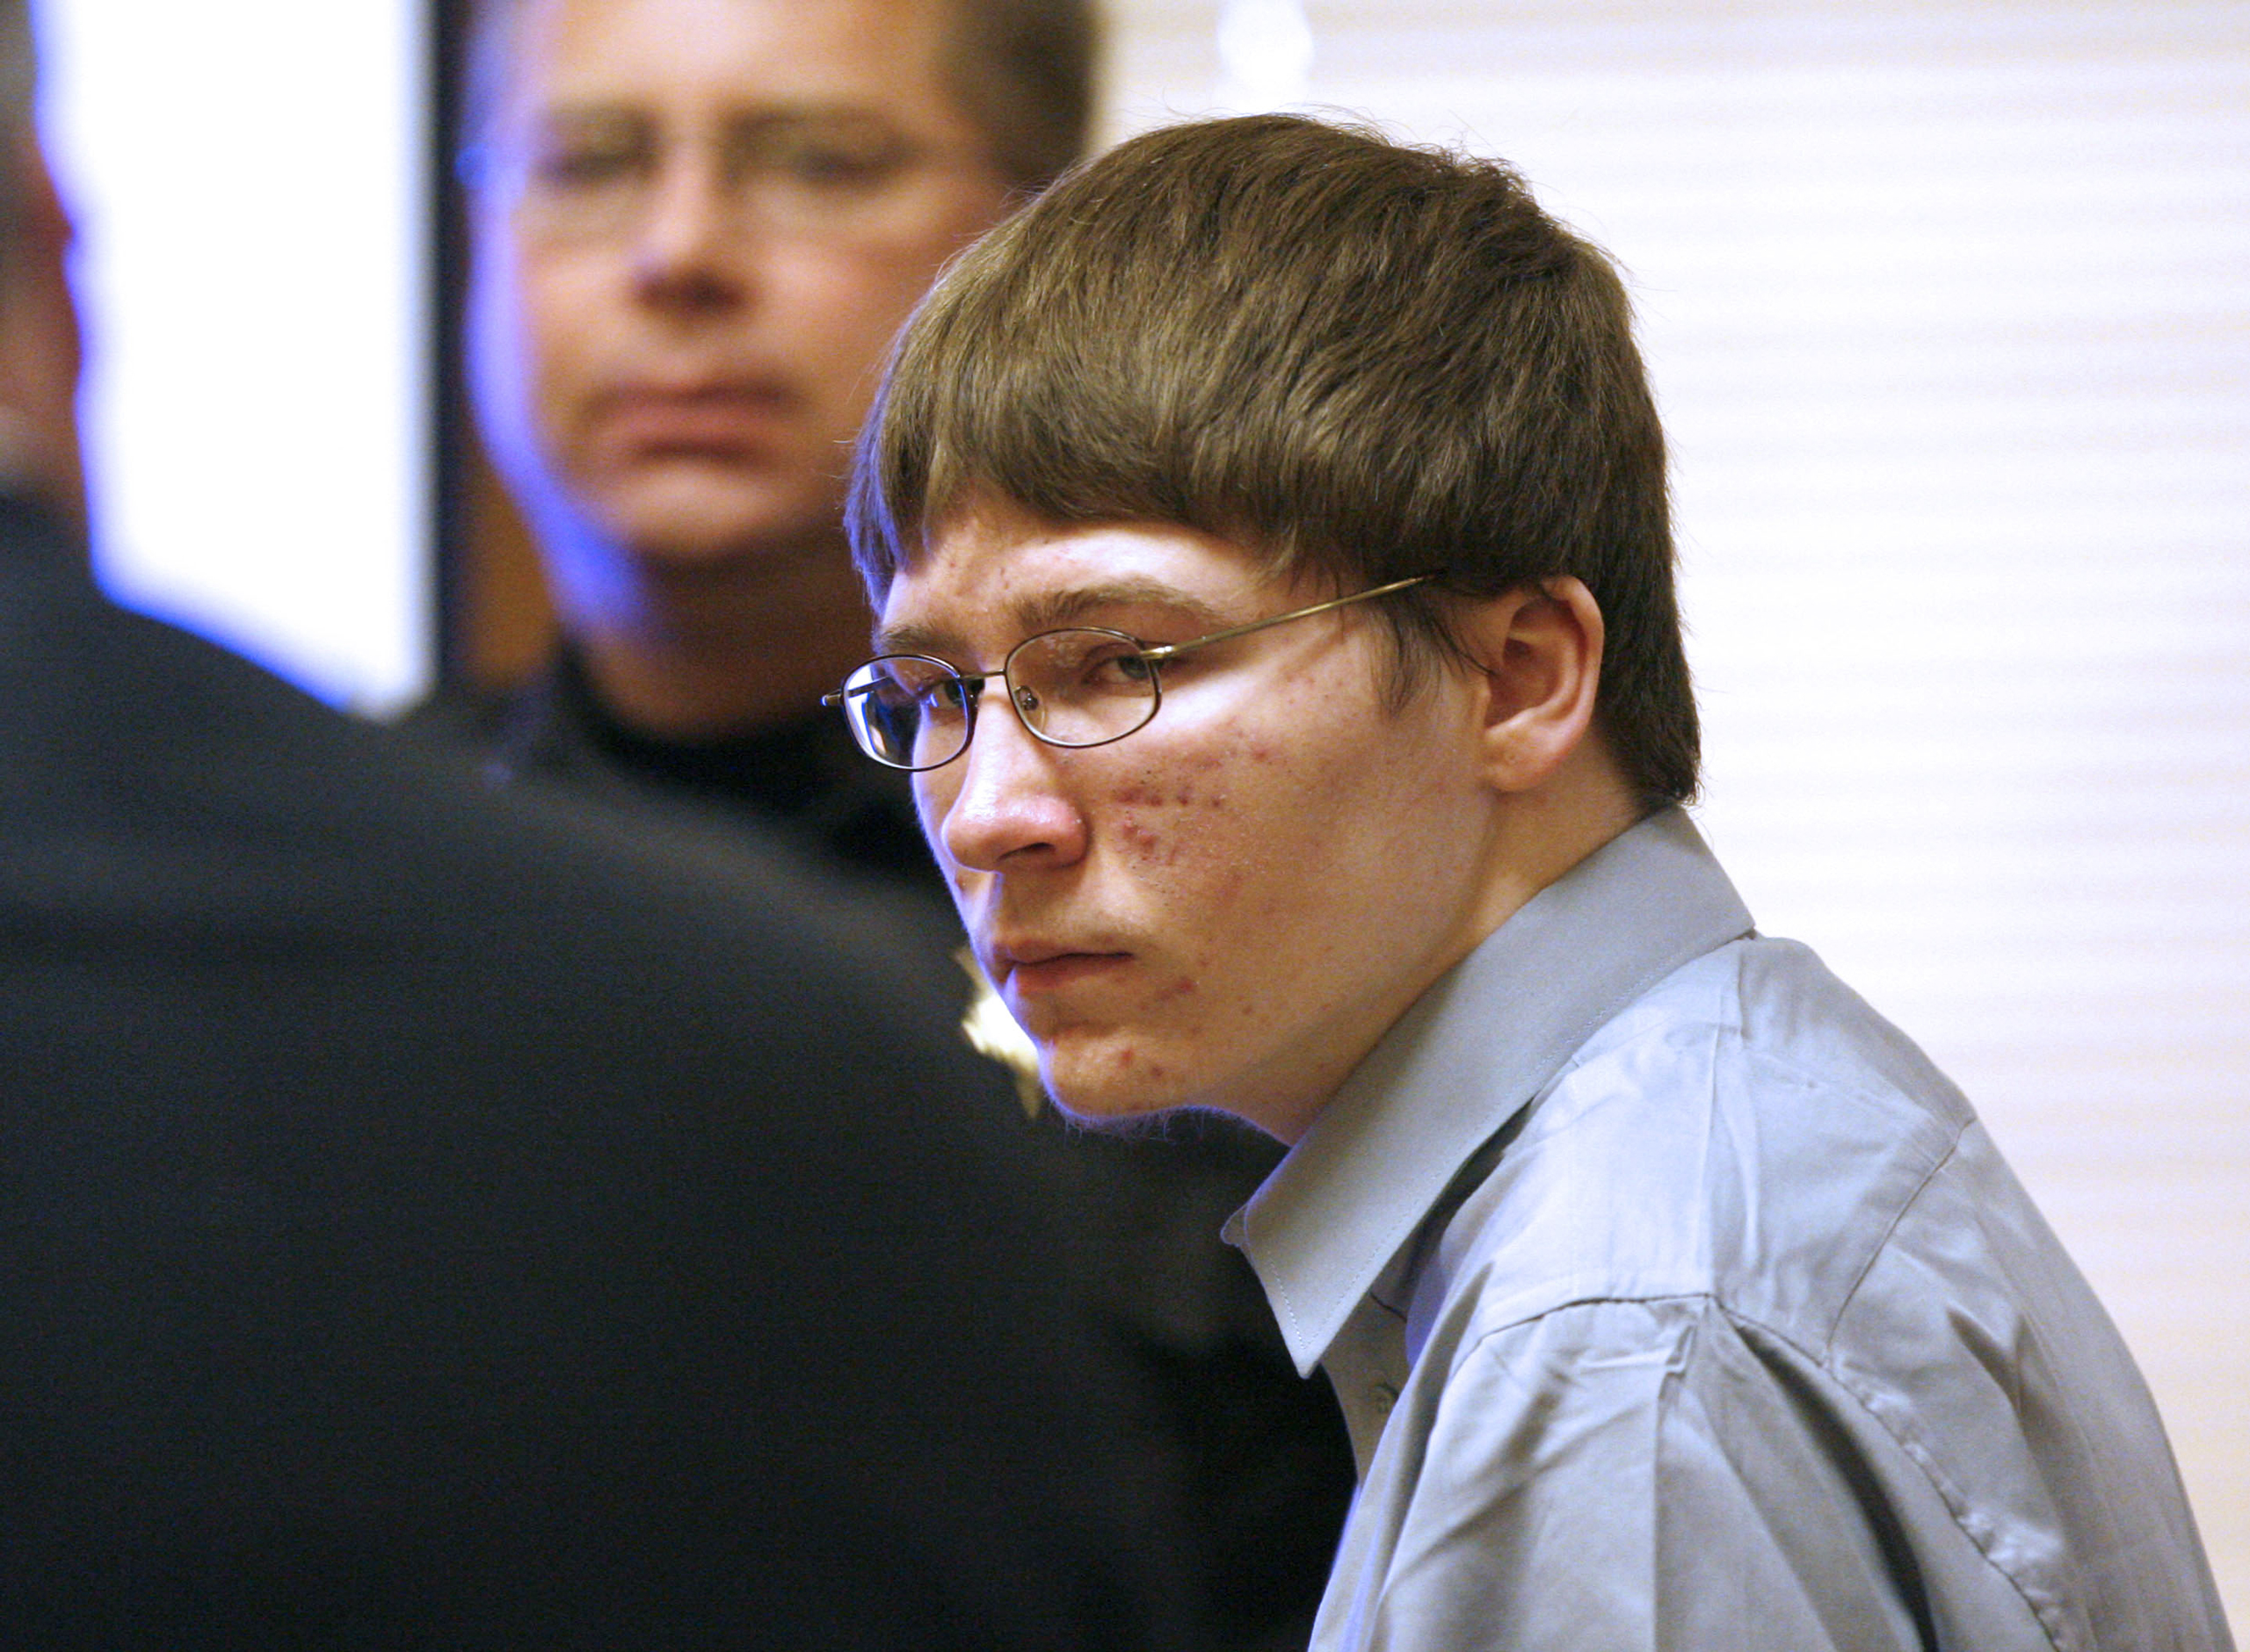 Brendan Dassey appears at the Manitowoc County Courthouse in Manitowoc, Wis., on April 16, 2007.